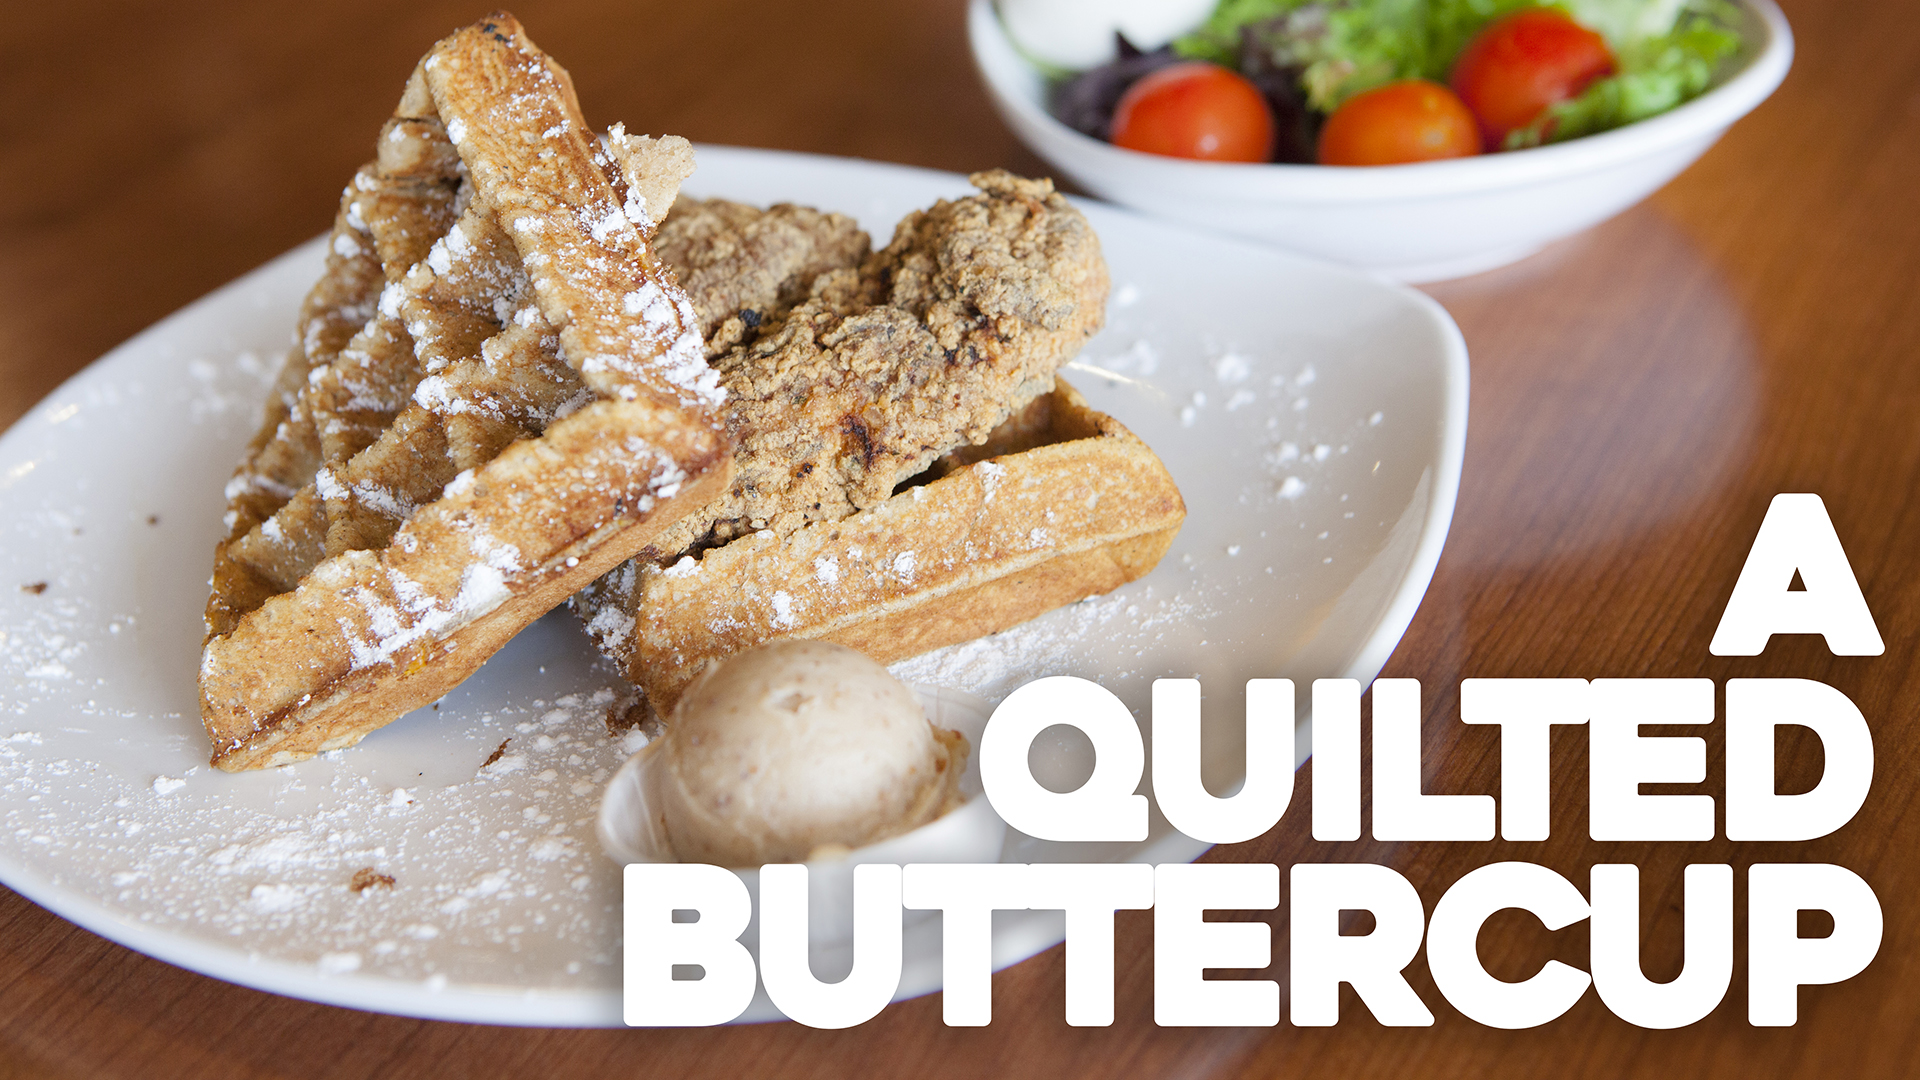 Quilted Buttercup